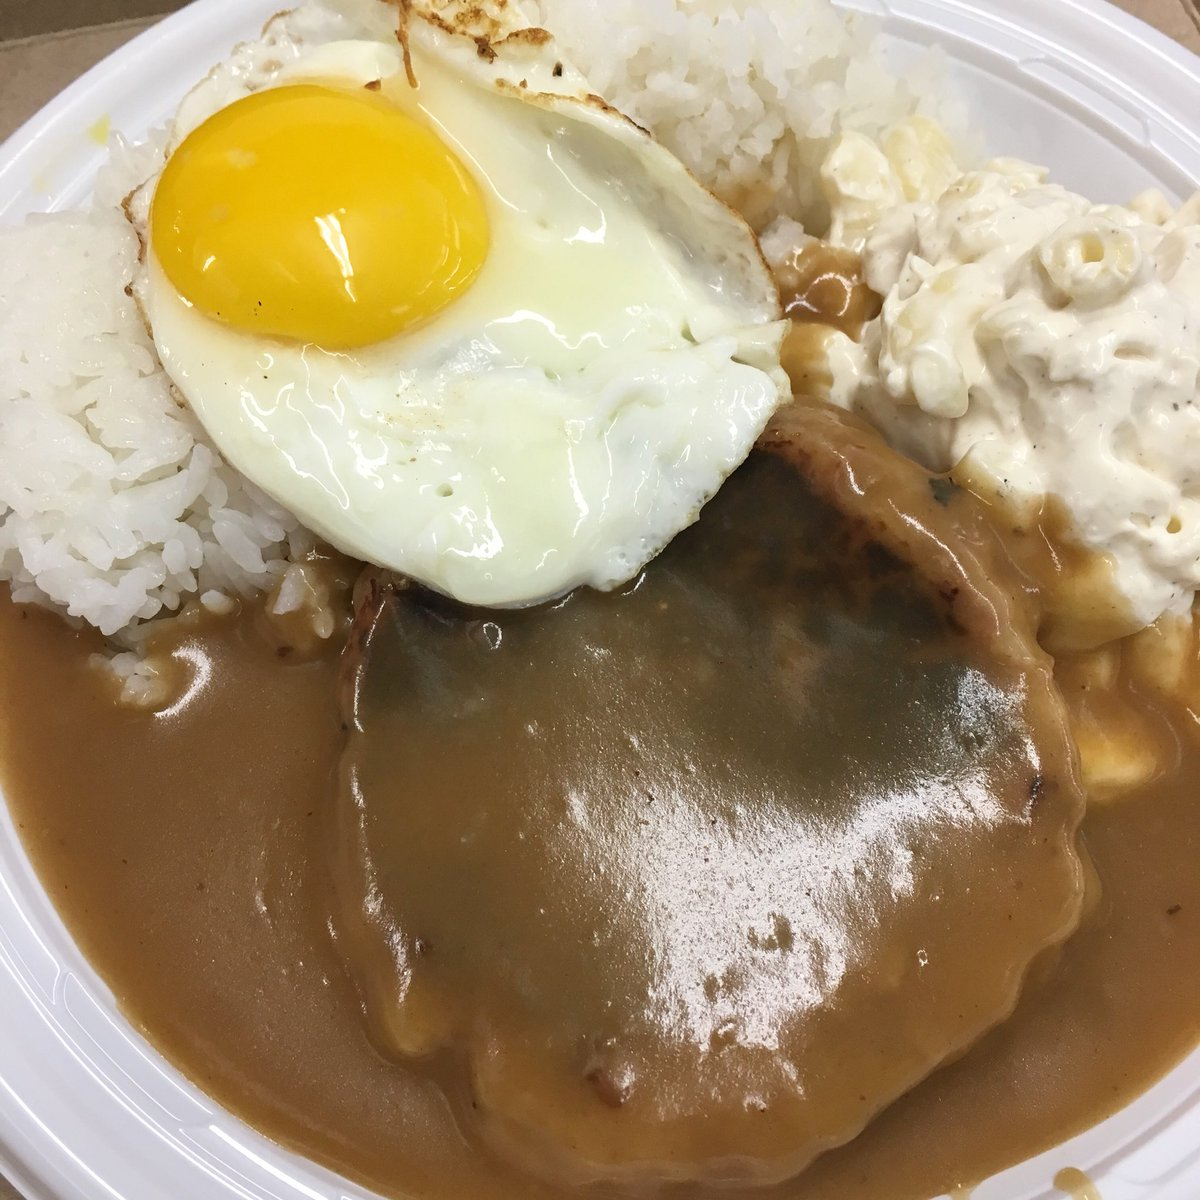 Rainbow Drive In On Twitter Corned Beef Hash With Gravy And A Sunny Side Up Egg Rainbowdrivein Rainbowgrinds Kapahulu Hawaii Platelunch